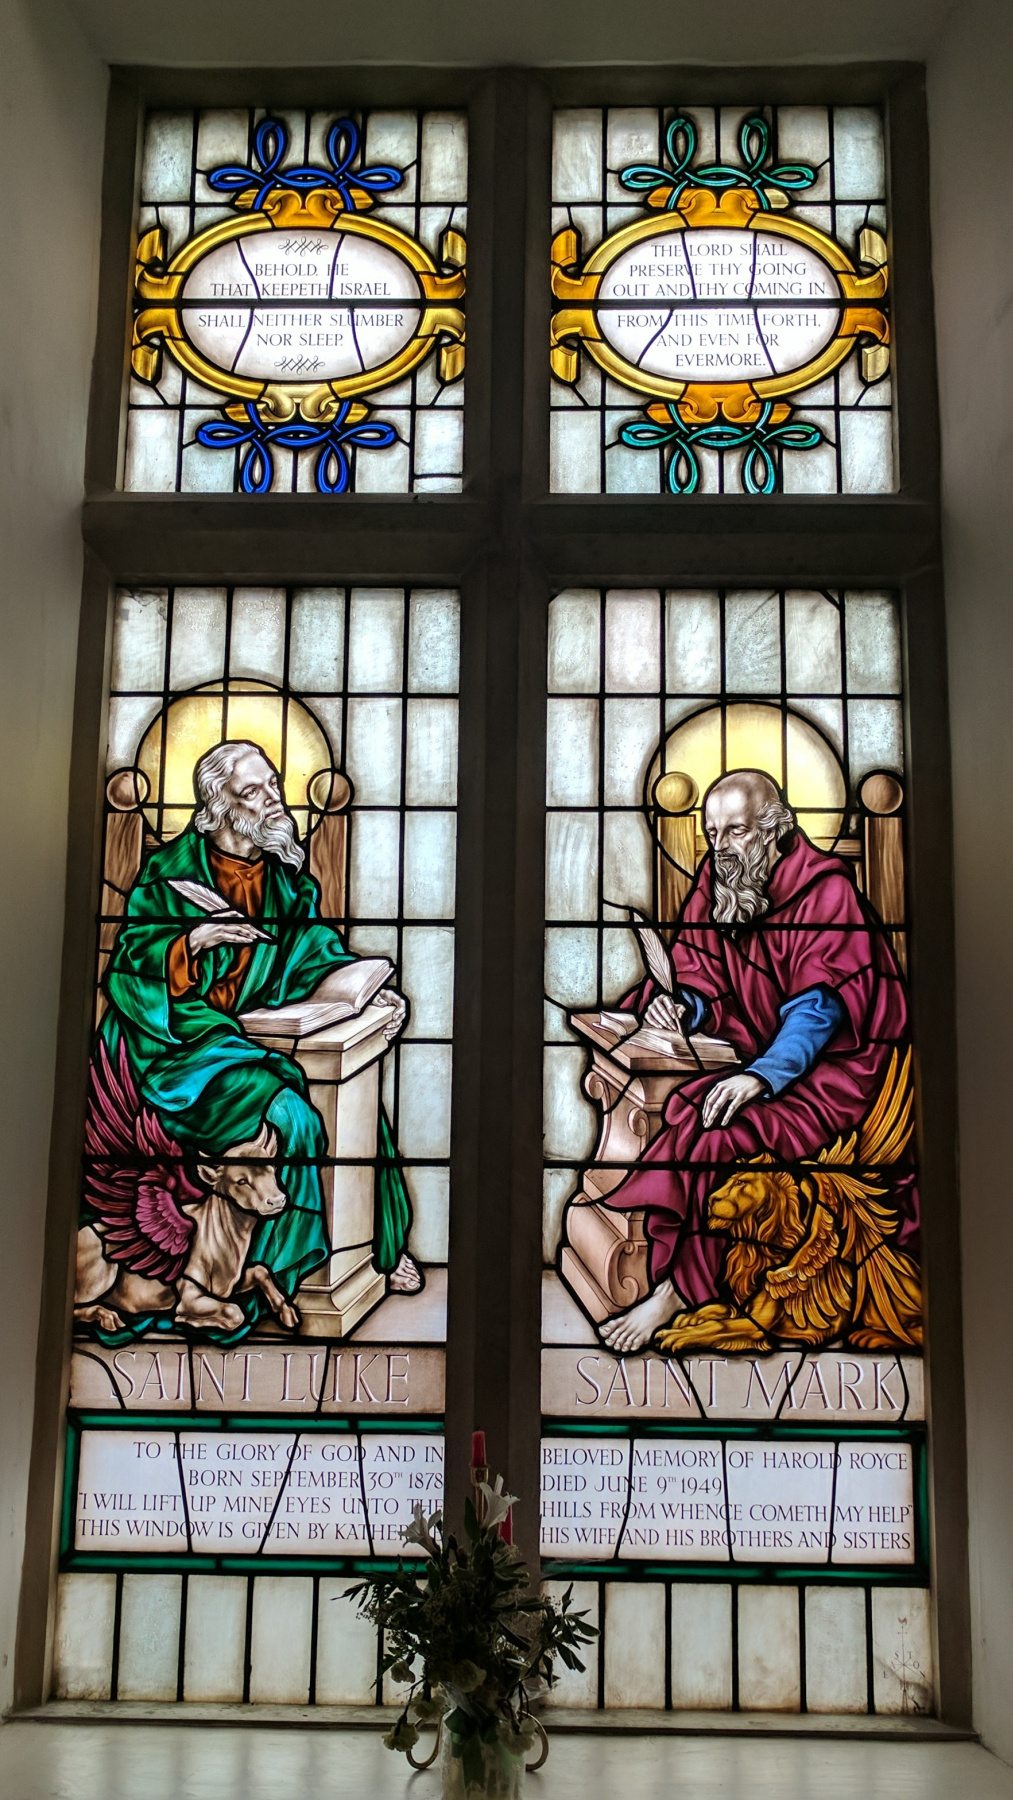 William Morris. Saint Luke and Saint Mark. Stained glass window in the Old House of Assembly, Mansfield, Nottinghamshire